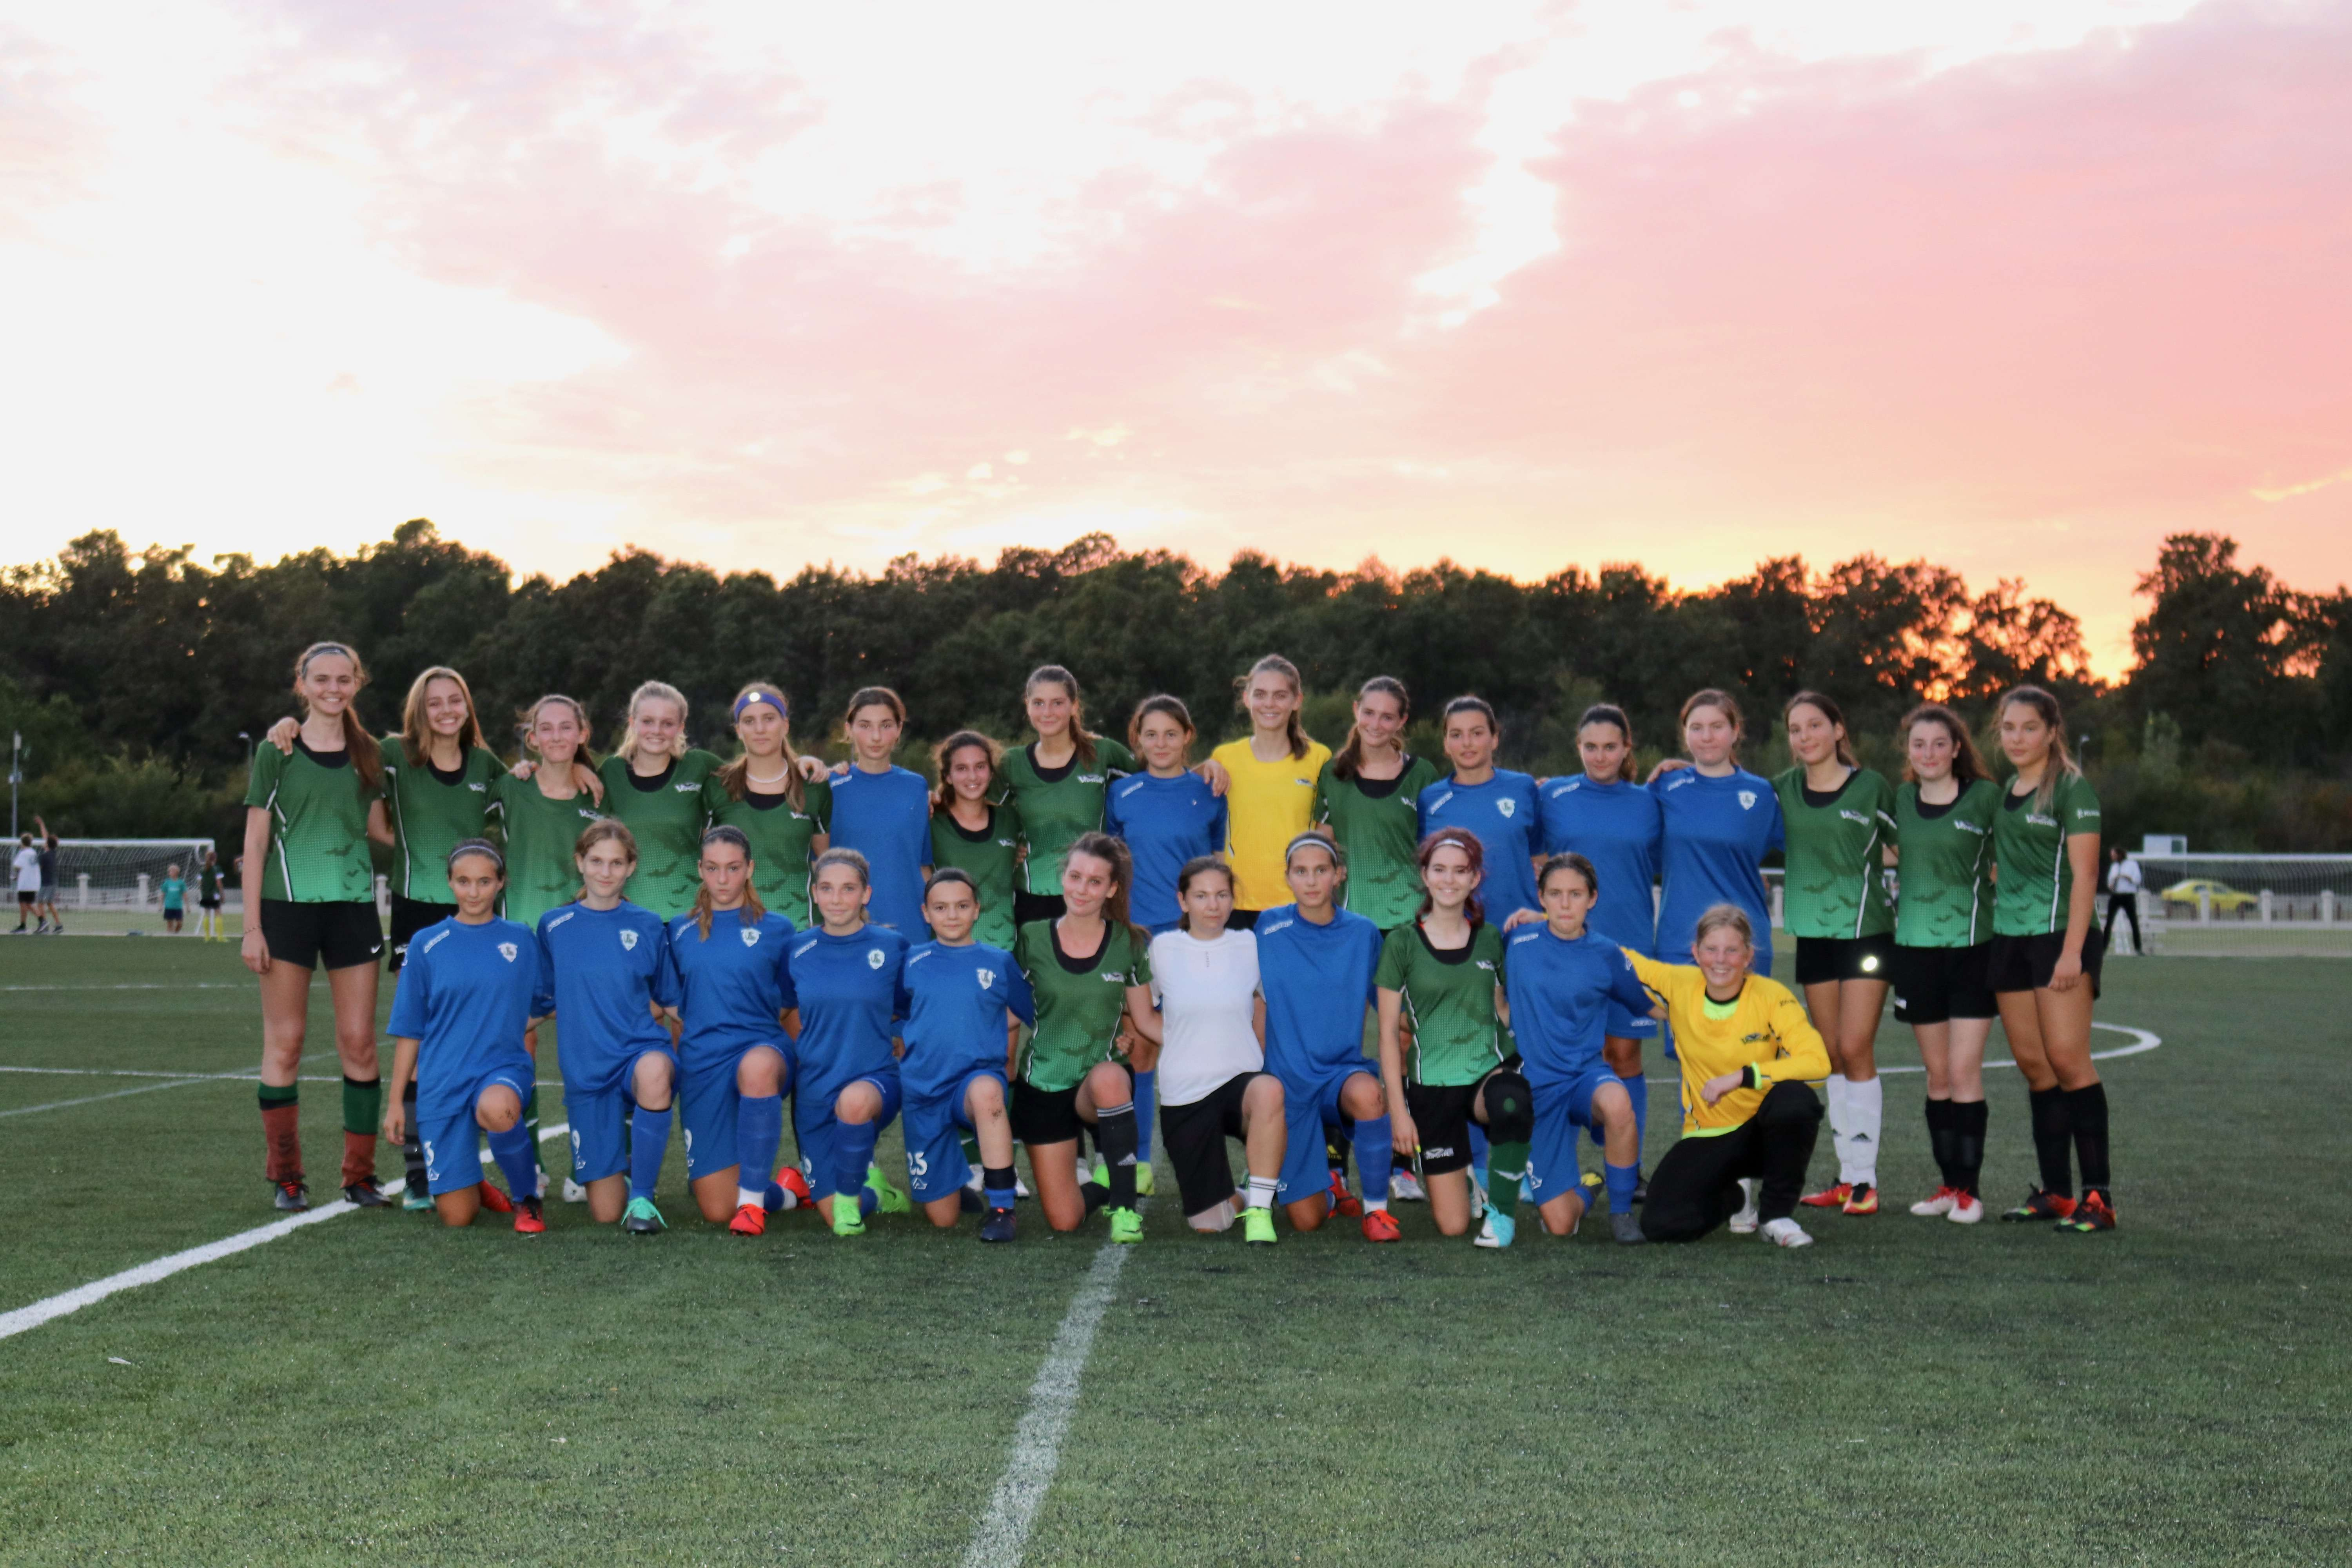 AISB Girls Football Takes on The Dream Team in the Season's First Match